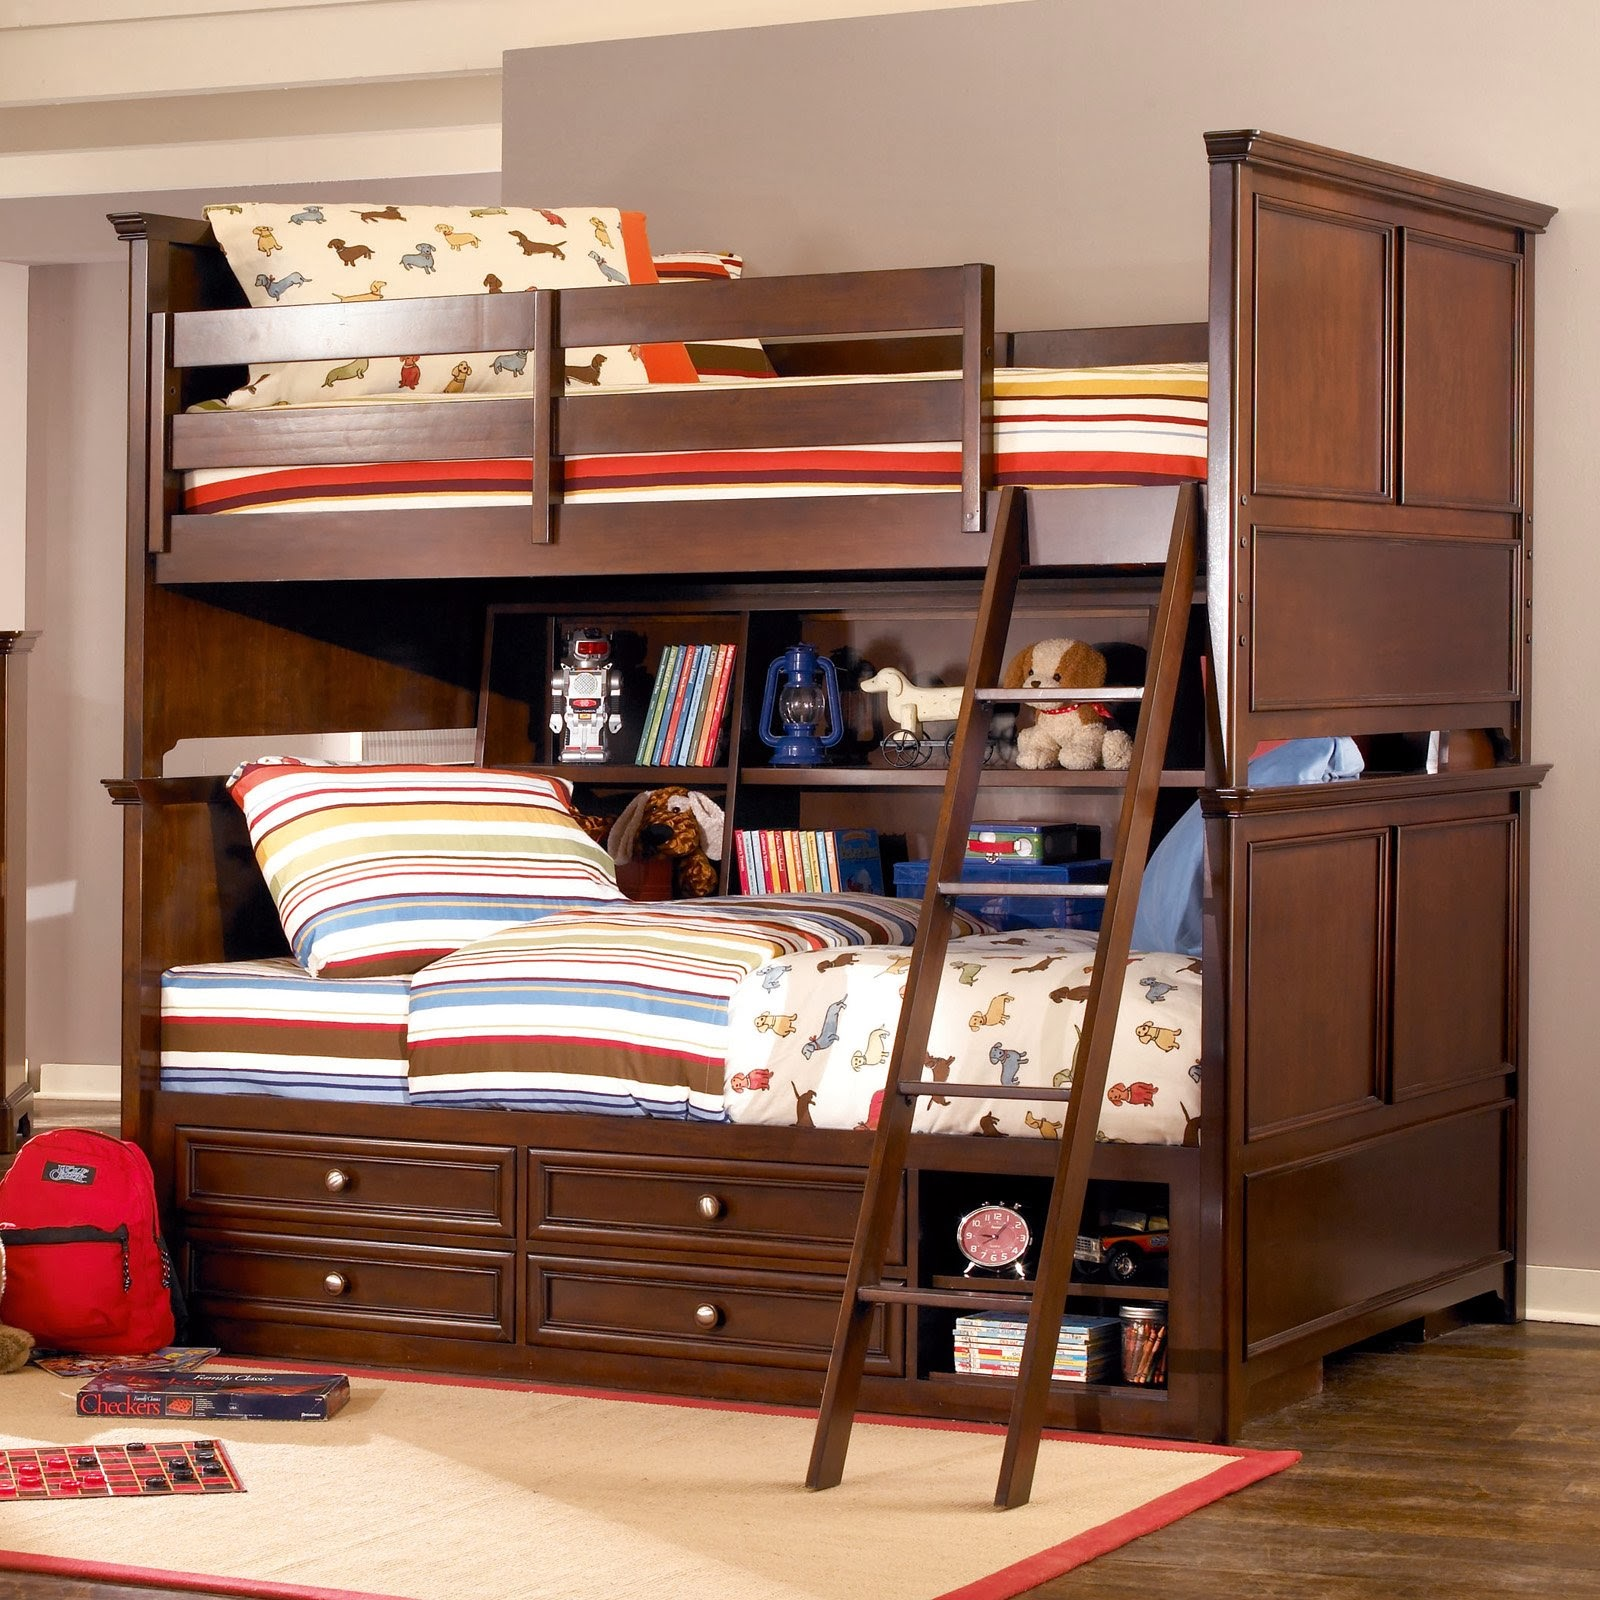 cool kids bedroom space saving ideas loft bed and bunk